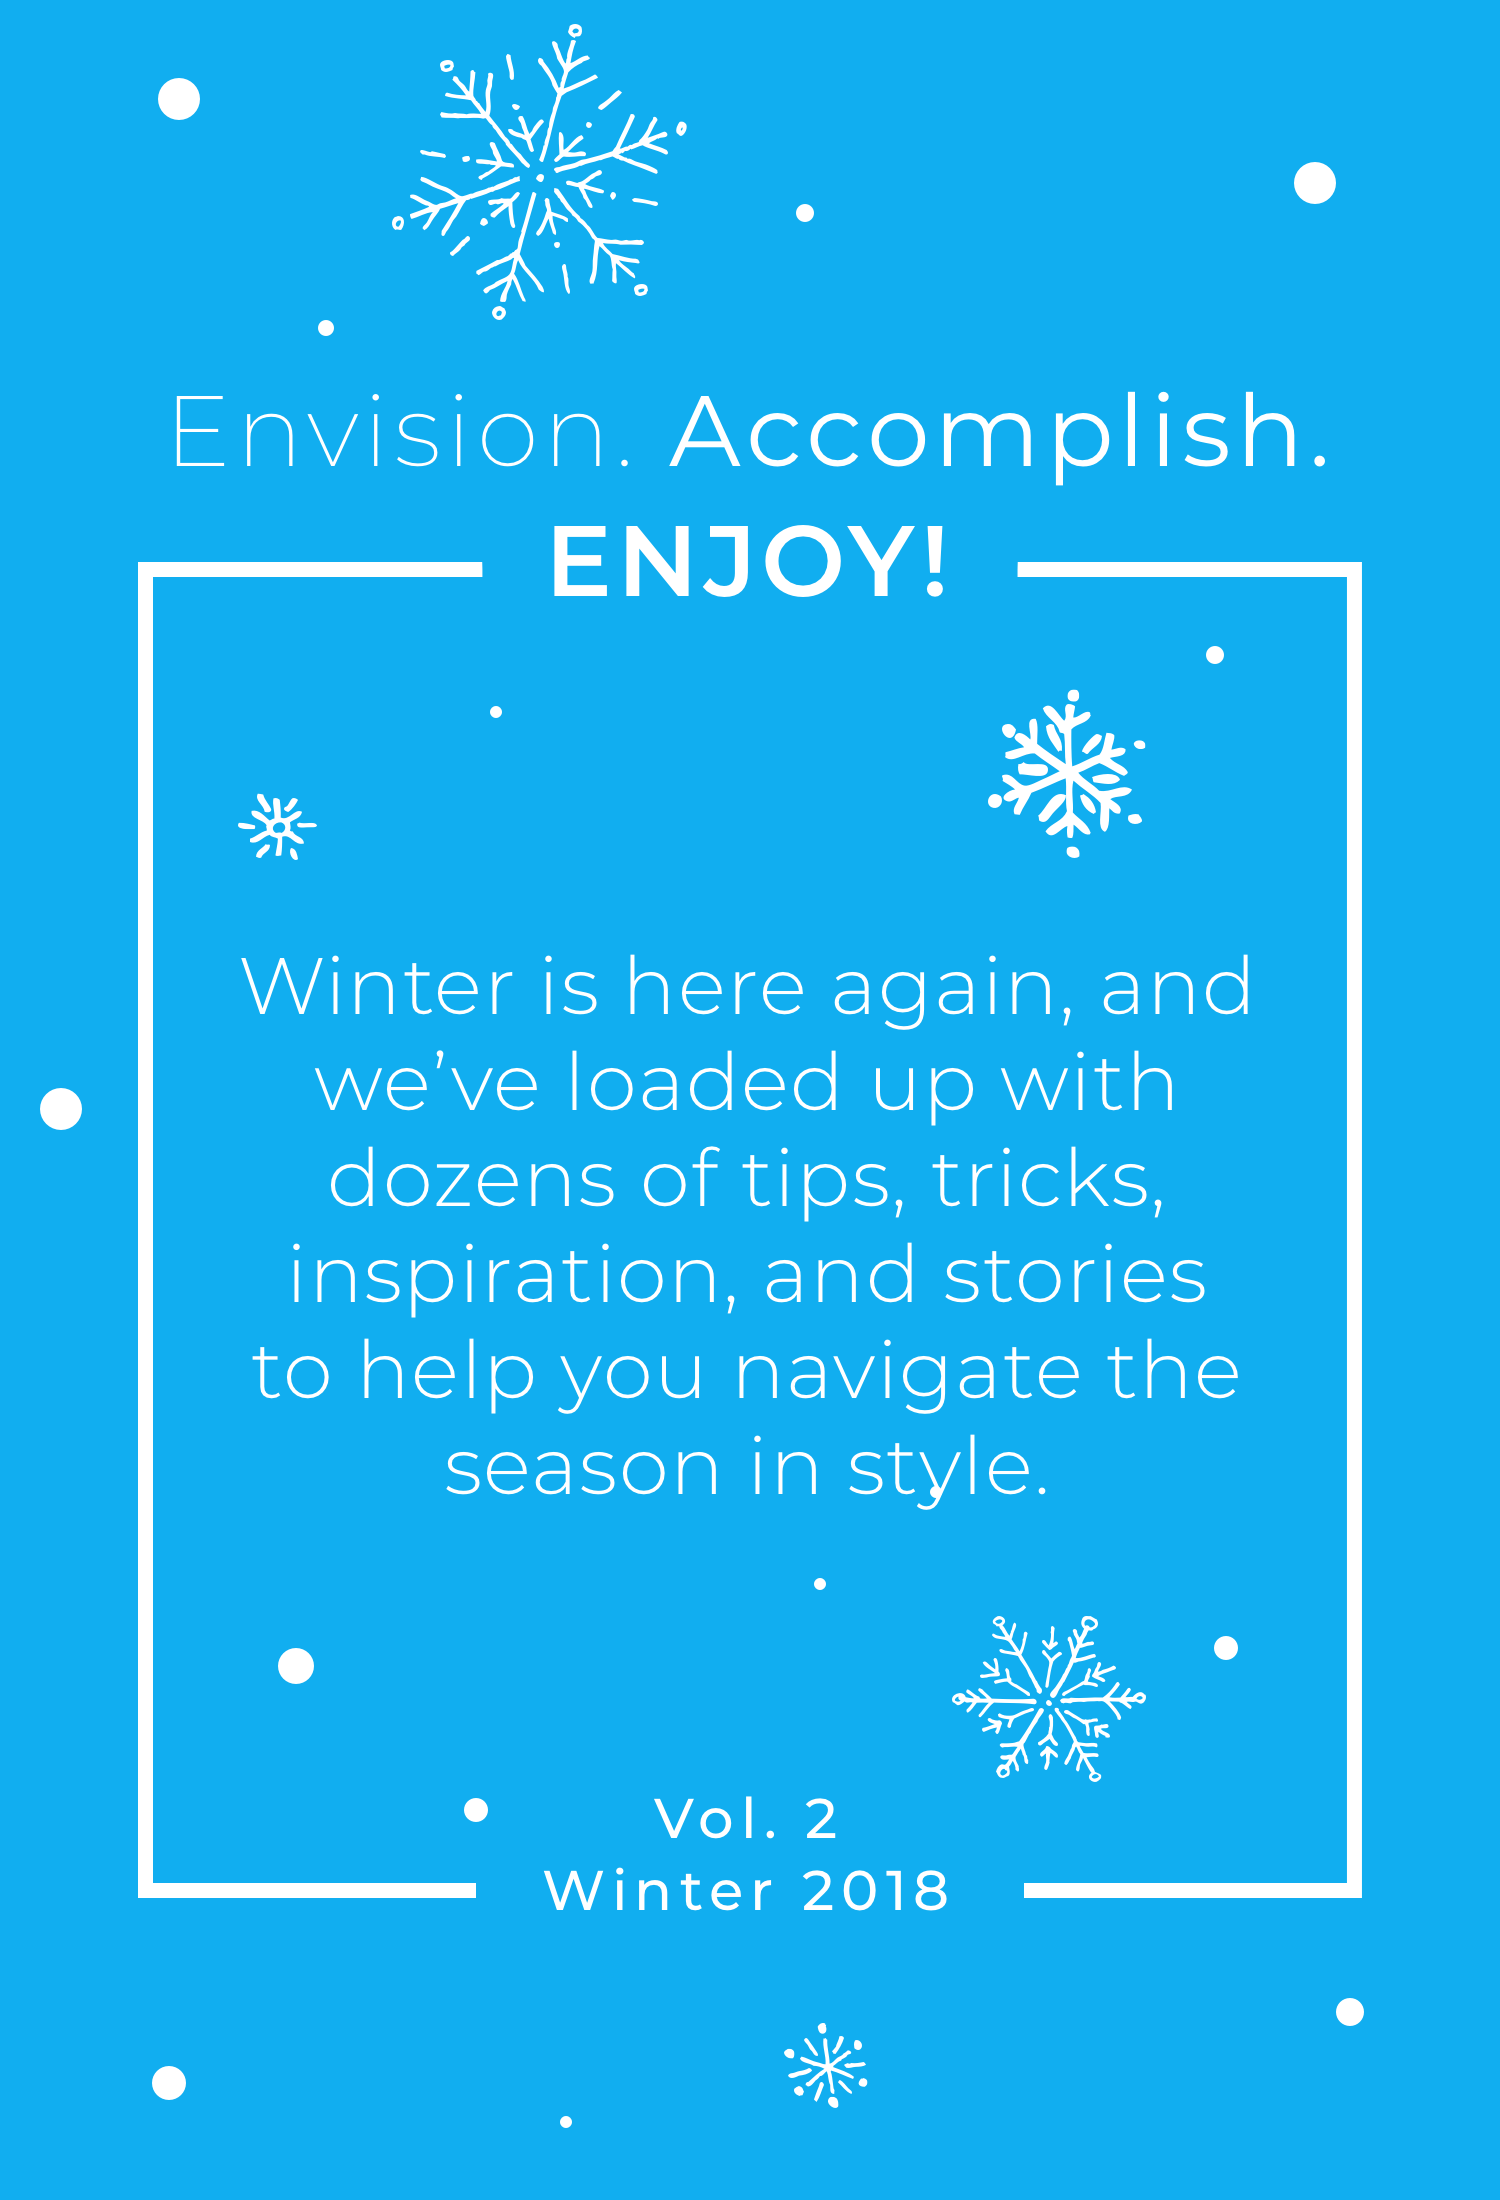 Envision. Accomplish. Enjoy! Vol. 2